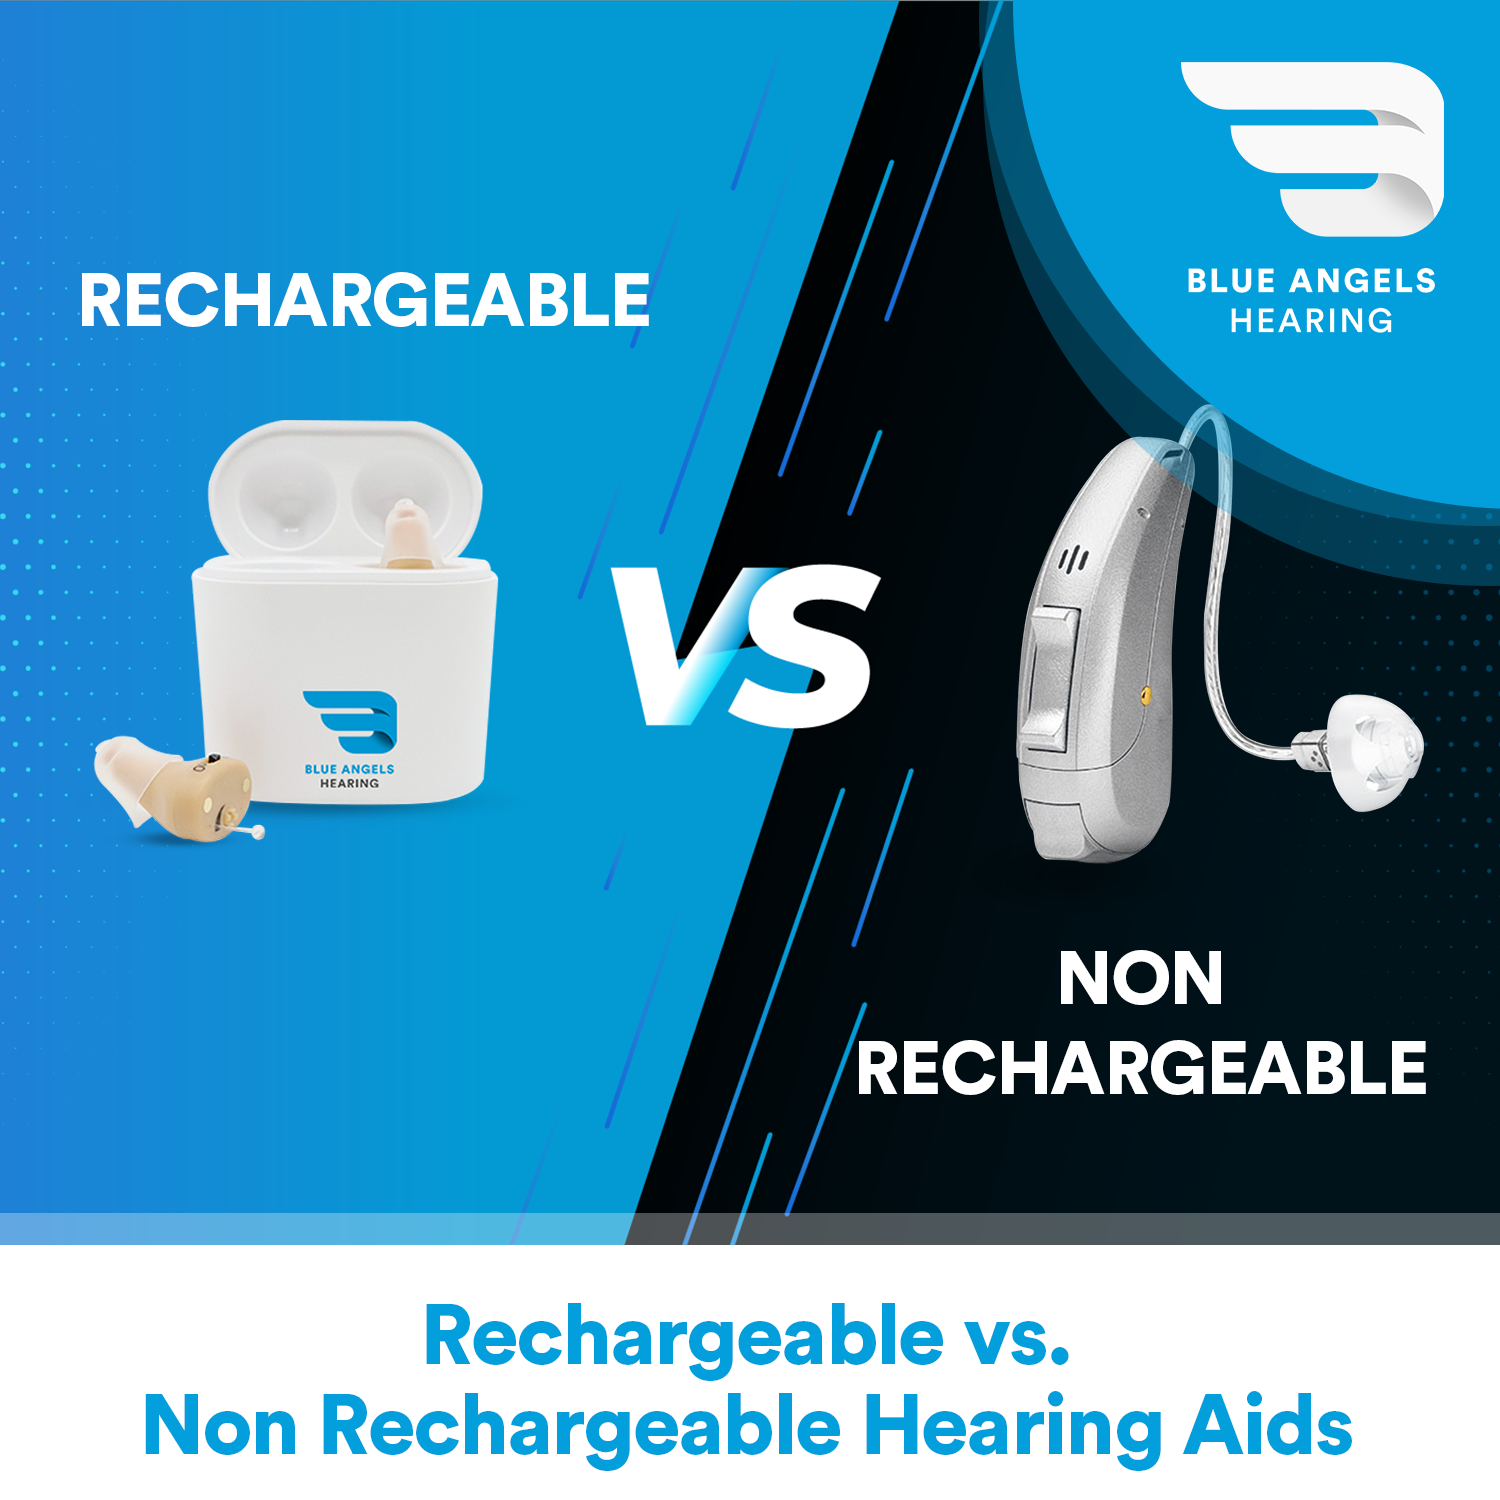 Rechargeable vs. Non-Rechargeable Hearing Aids - What's Better?